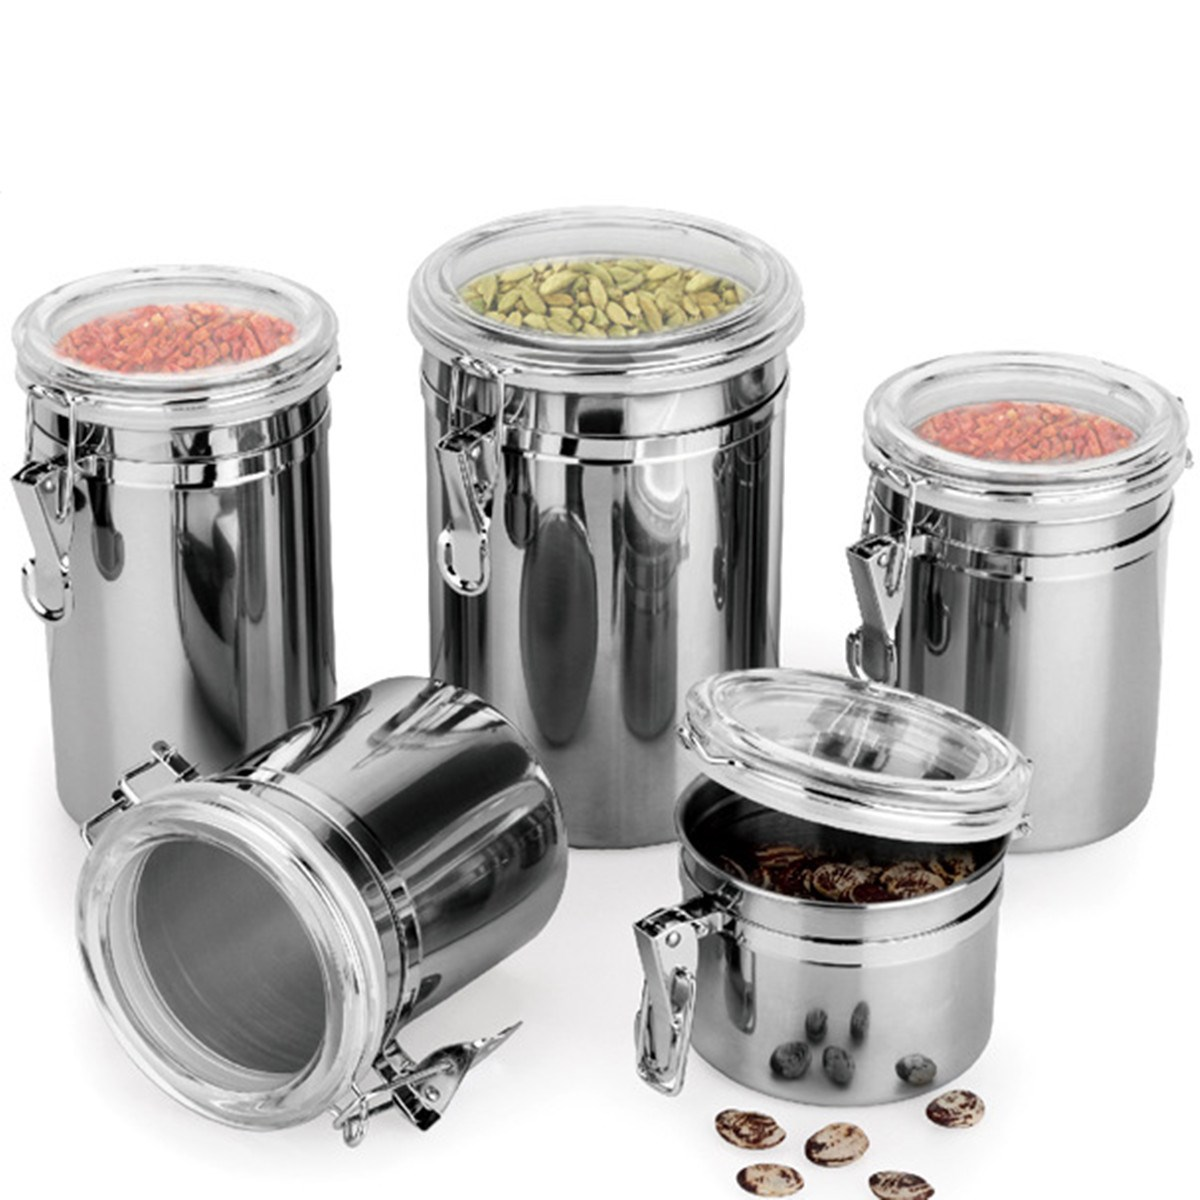 popular stainless steel tea container buy cheap stainless steel kitchen container boxes 4 size metal storage food bottles sugar tea coffee beans canisters snack cans